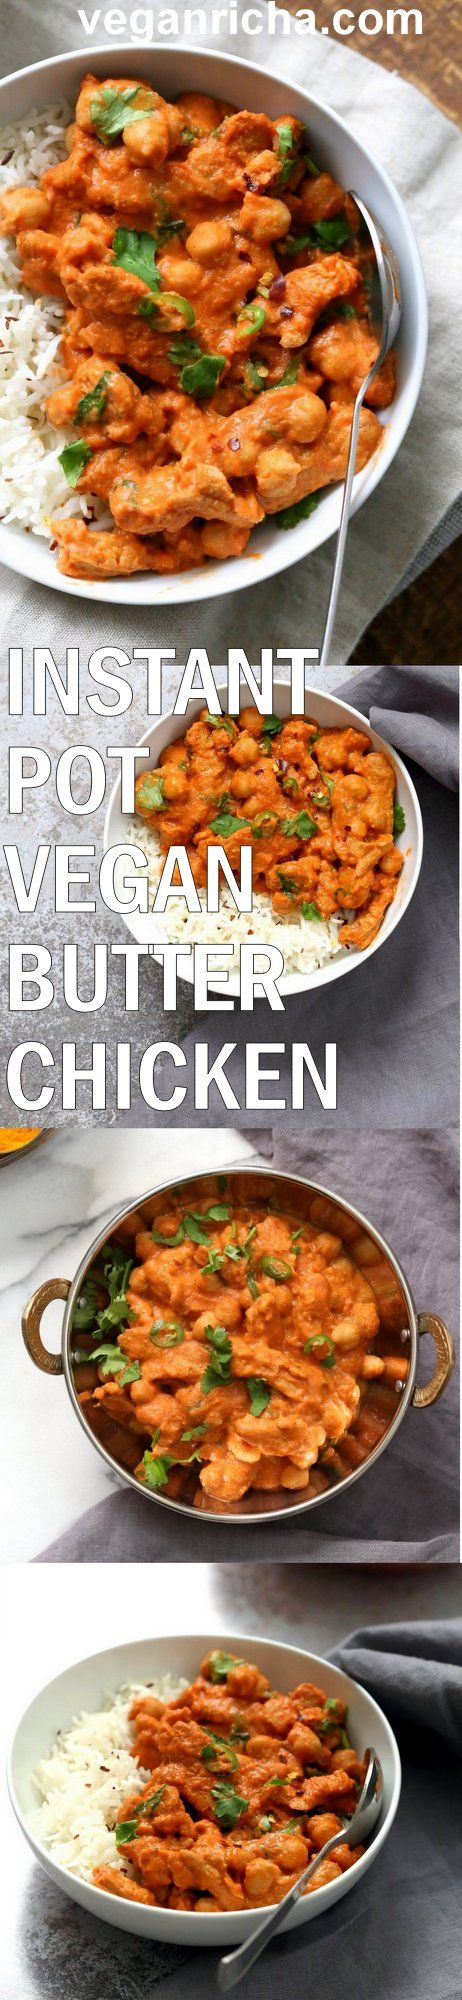 Pin On Recipes I Must Make Vegan Veggie